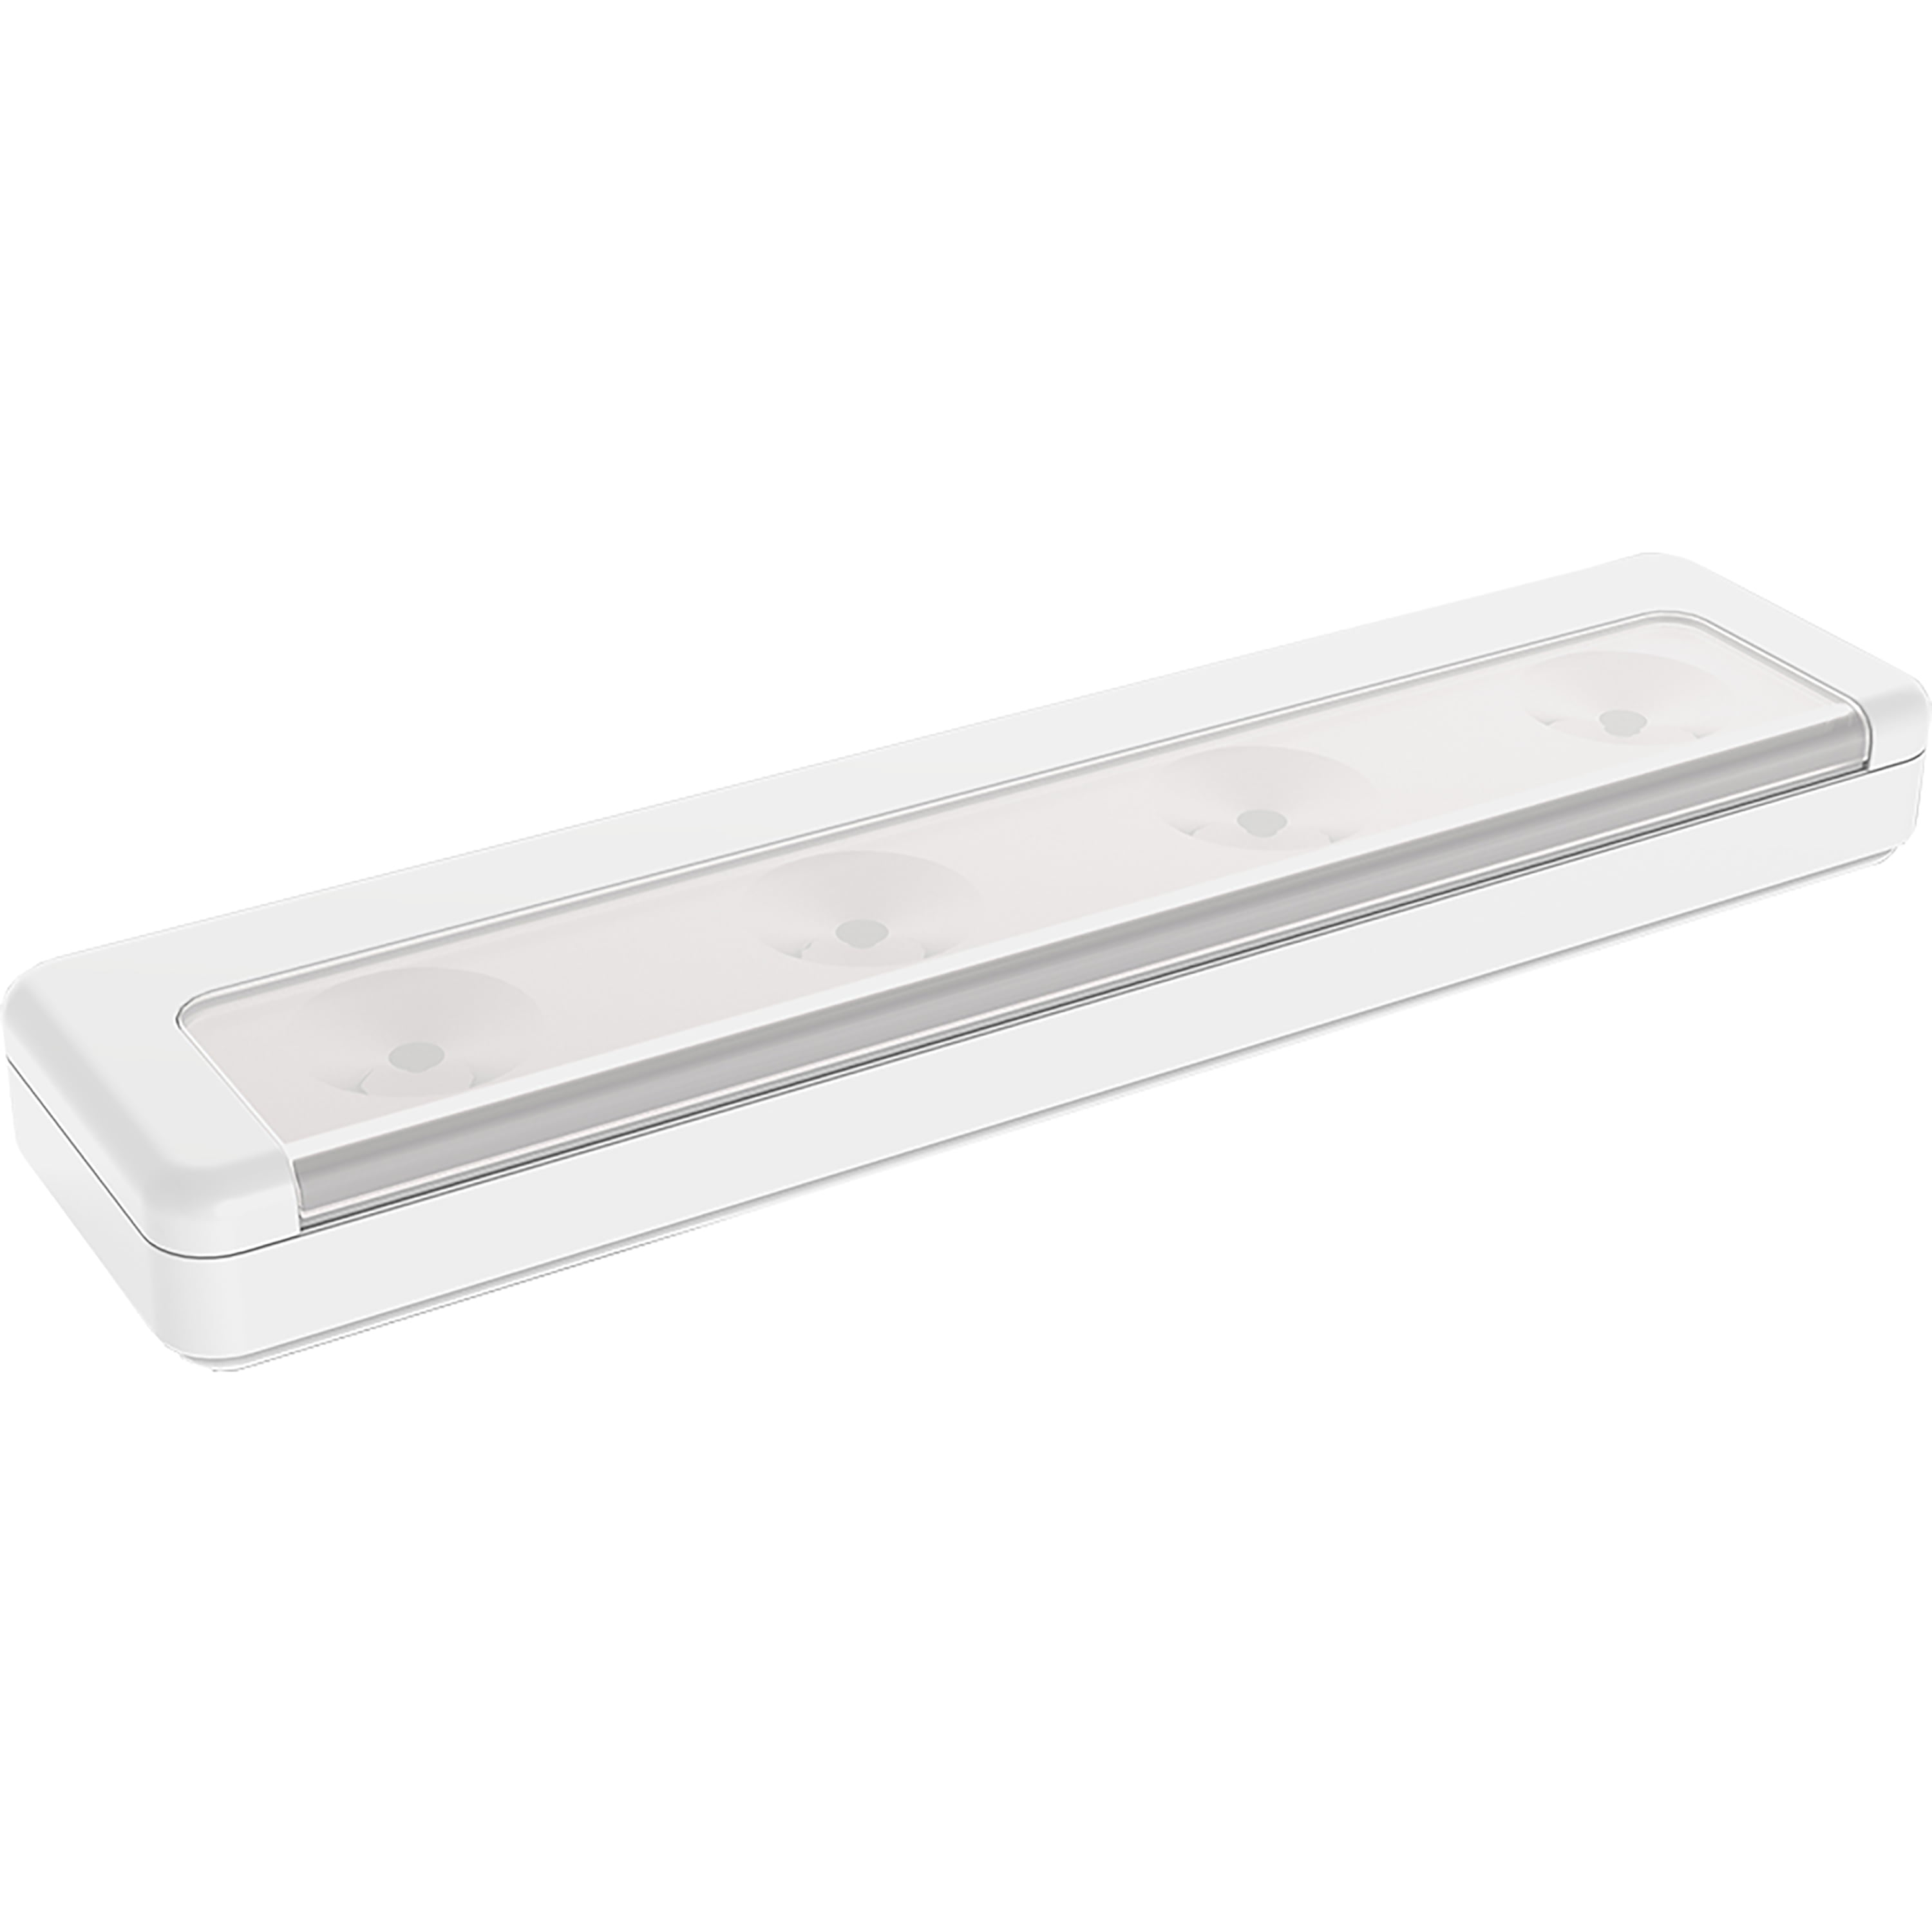 Brilliant Evolution BRRC116 Wireless Ultra Thin LED Light